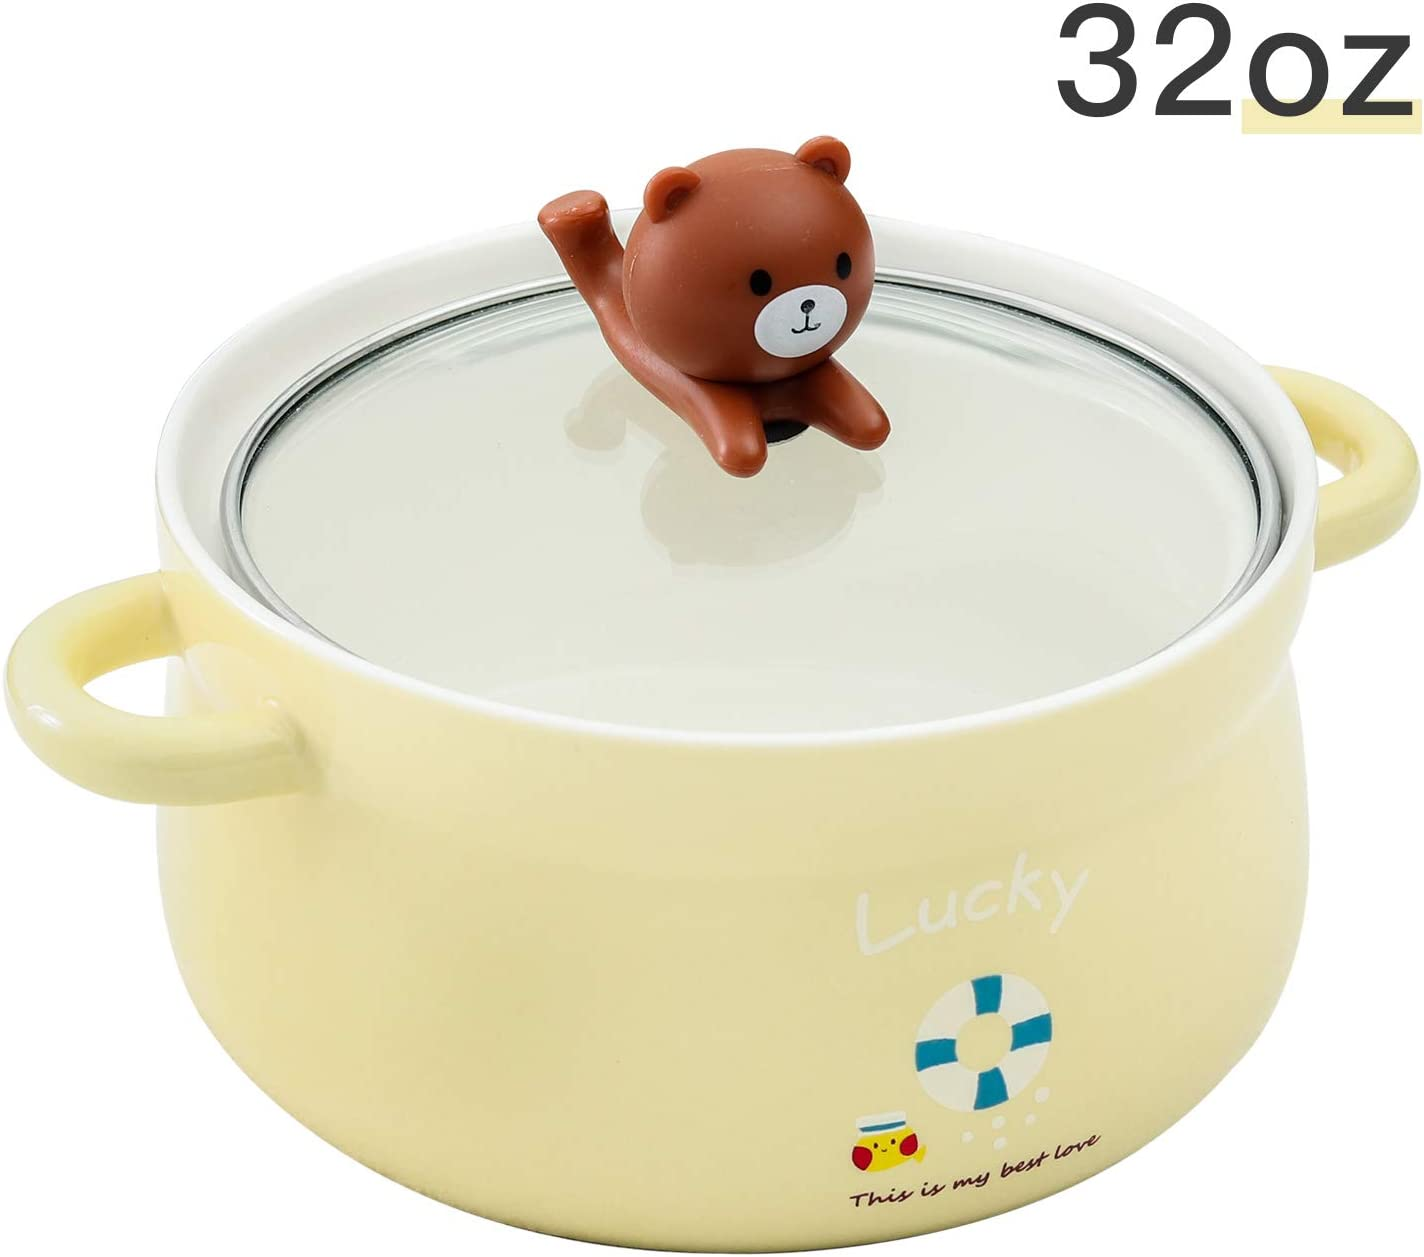 Line Friends Brown Noodle Ramen Bowl Stainless Steel Fruit Salad Container